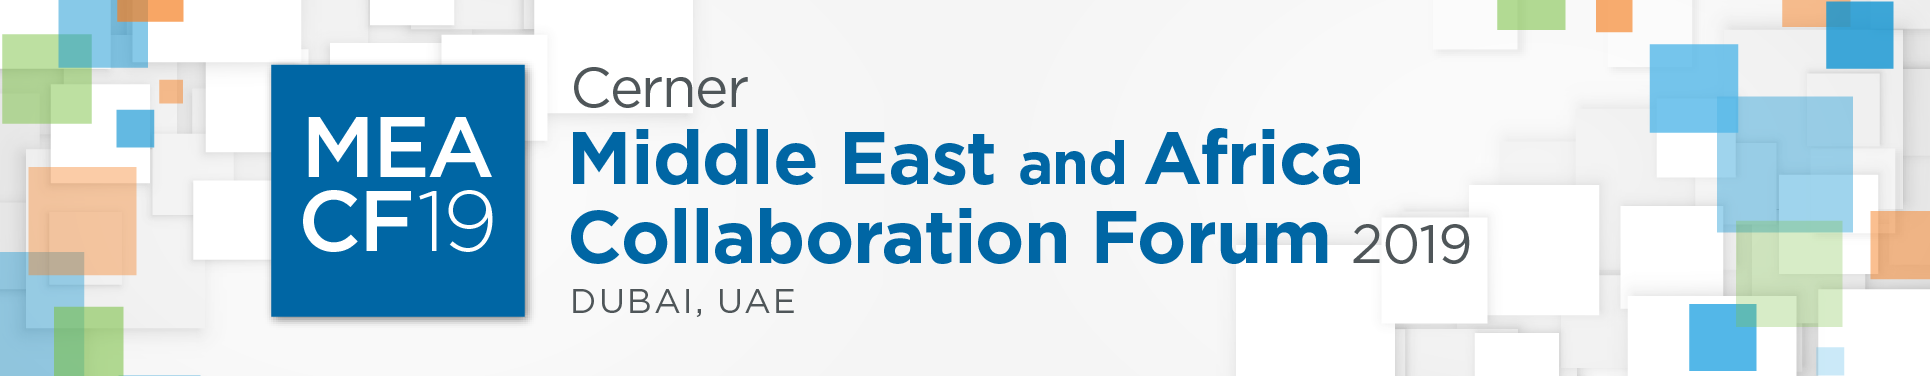 Middle East and Africa Collaboration Forum